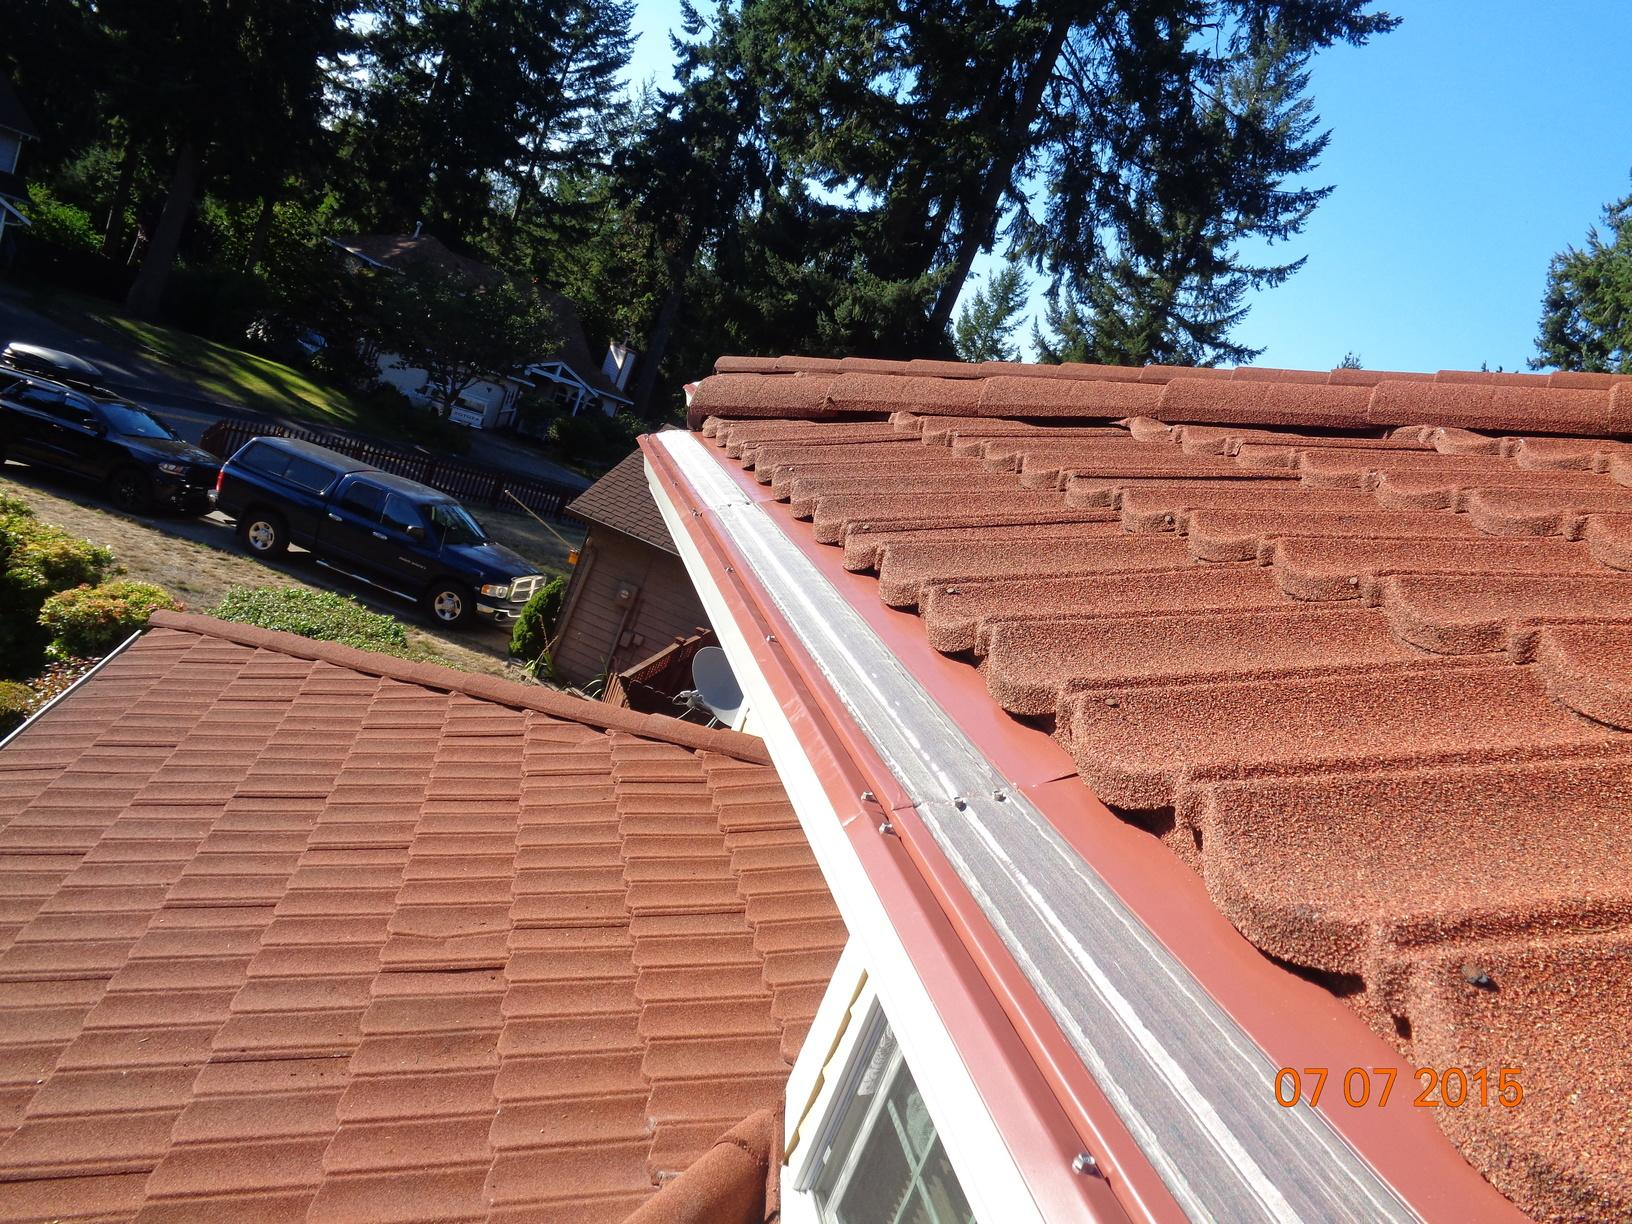 The Solution to Clogged Gutters is Gutter Guards